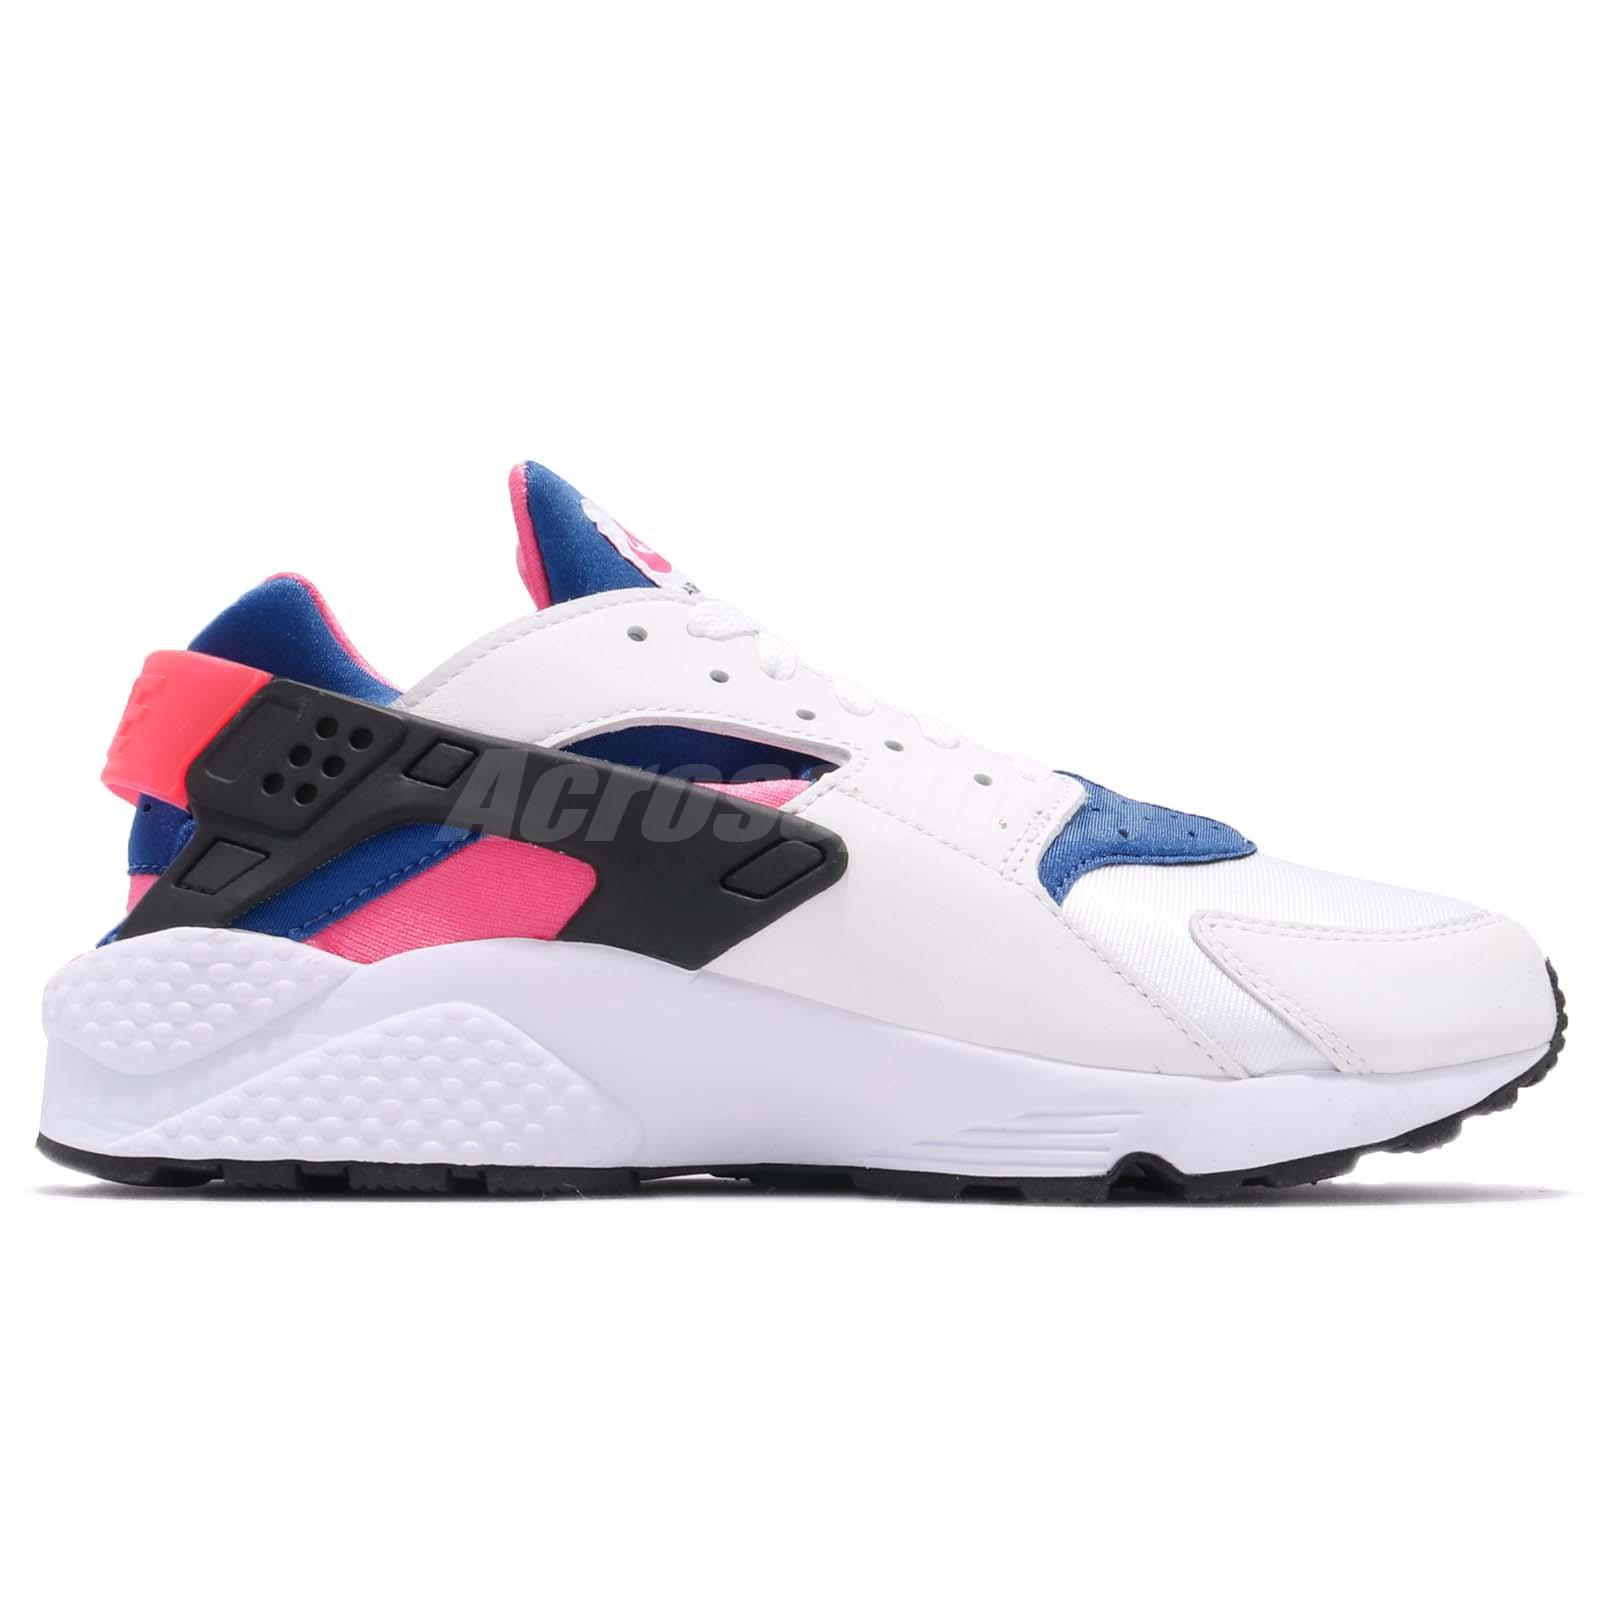 049b43befe1b4 Nike Air Huarache Run 91 QS OG White Blue Pink Men Shoes Sneakers ...